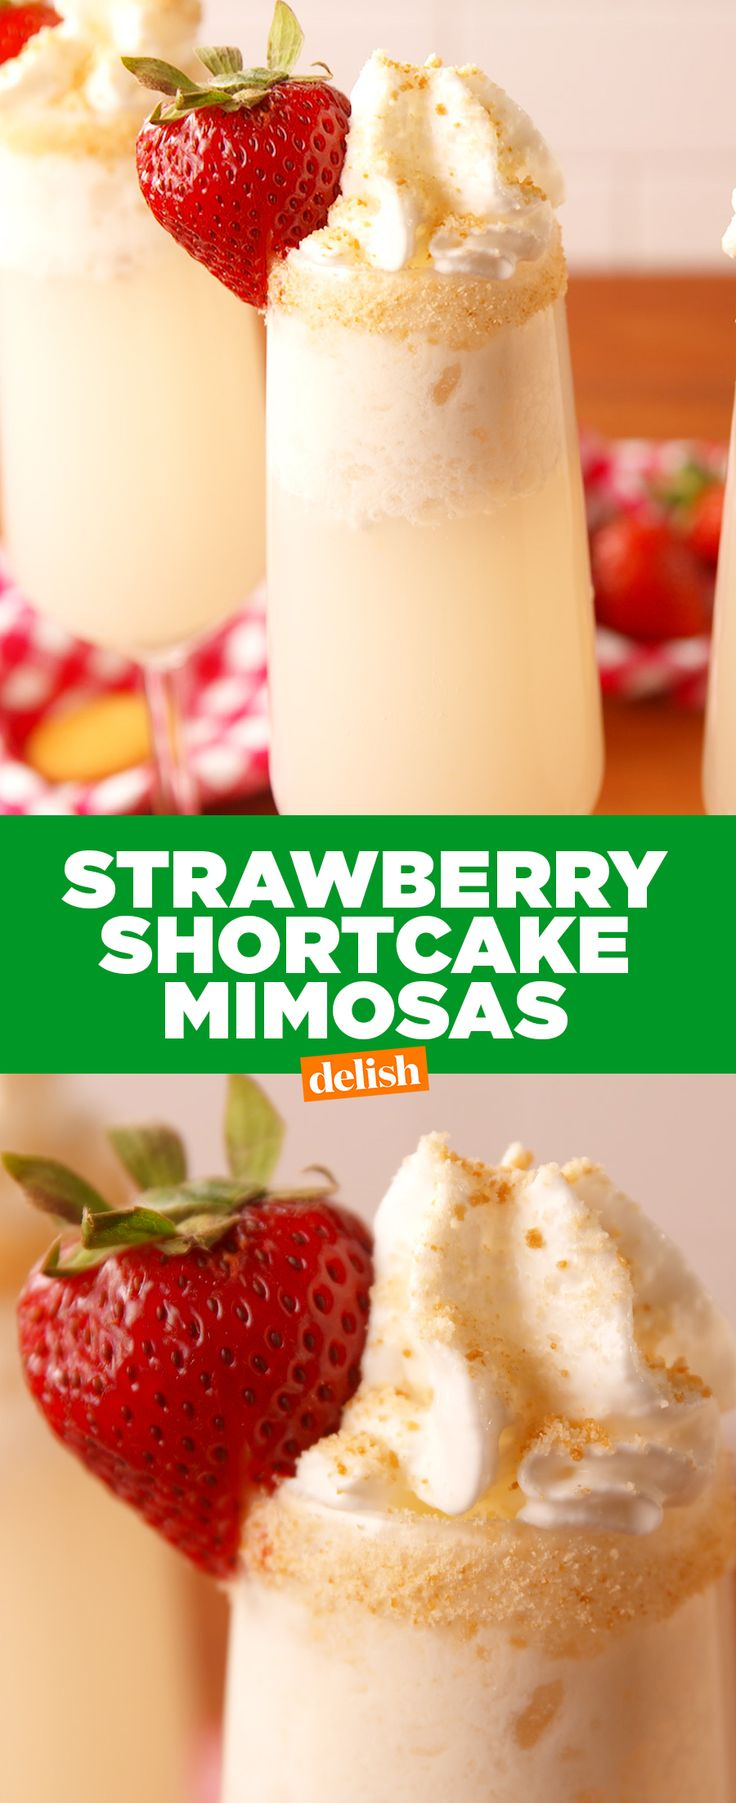 Strawberry Shortcake Mimosas let you have your cake and drink it too. Get the recipe at Delish.com.